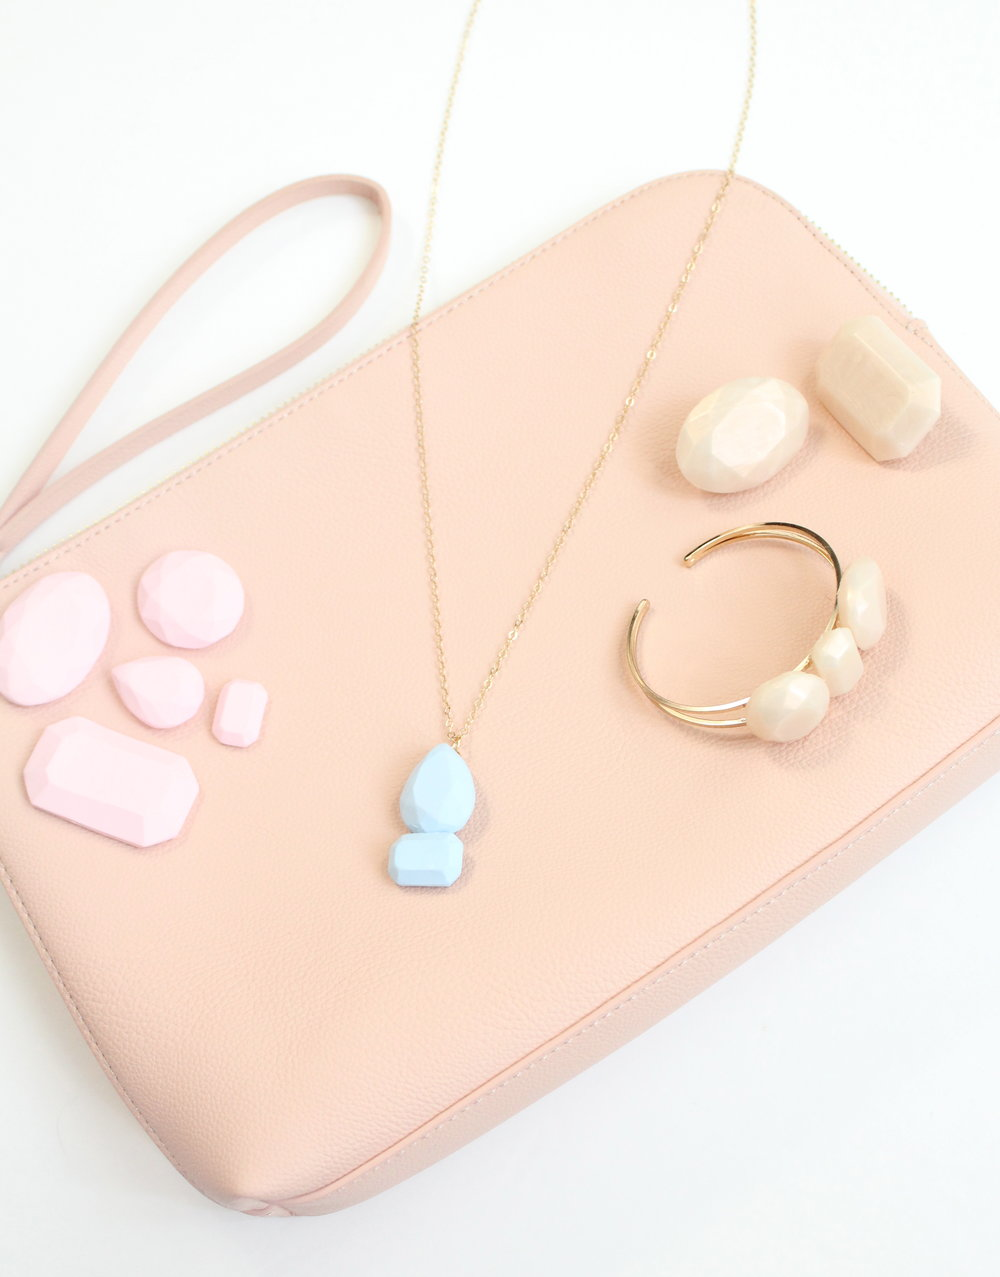 Clay Gemstone Accessories - Martha Stewart